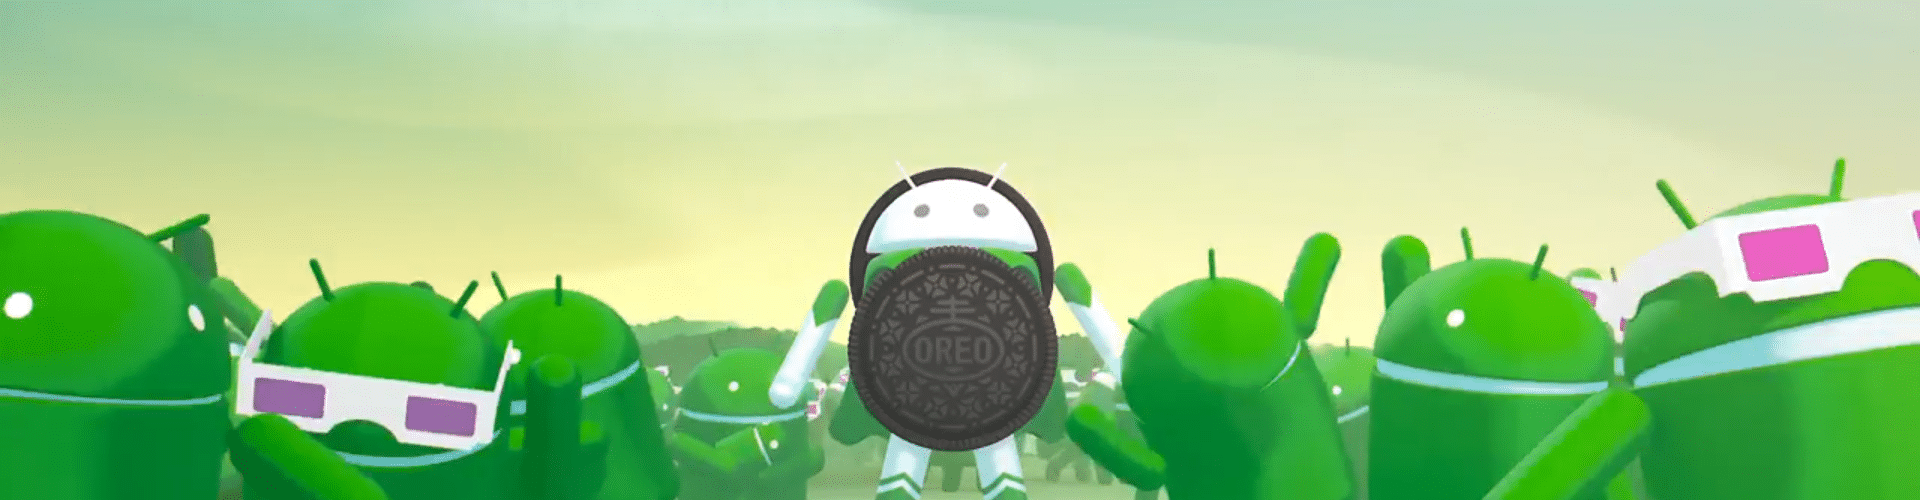 Android Oreo Pixel Launcher